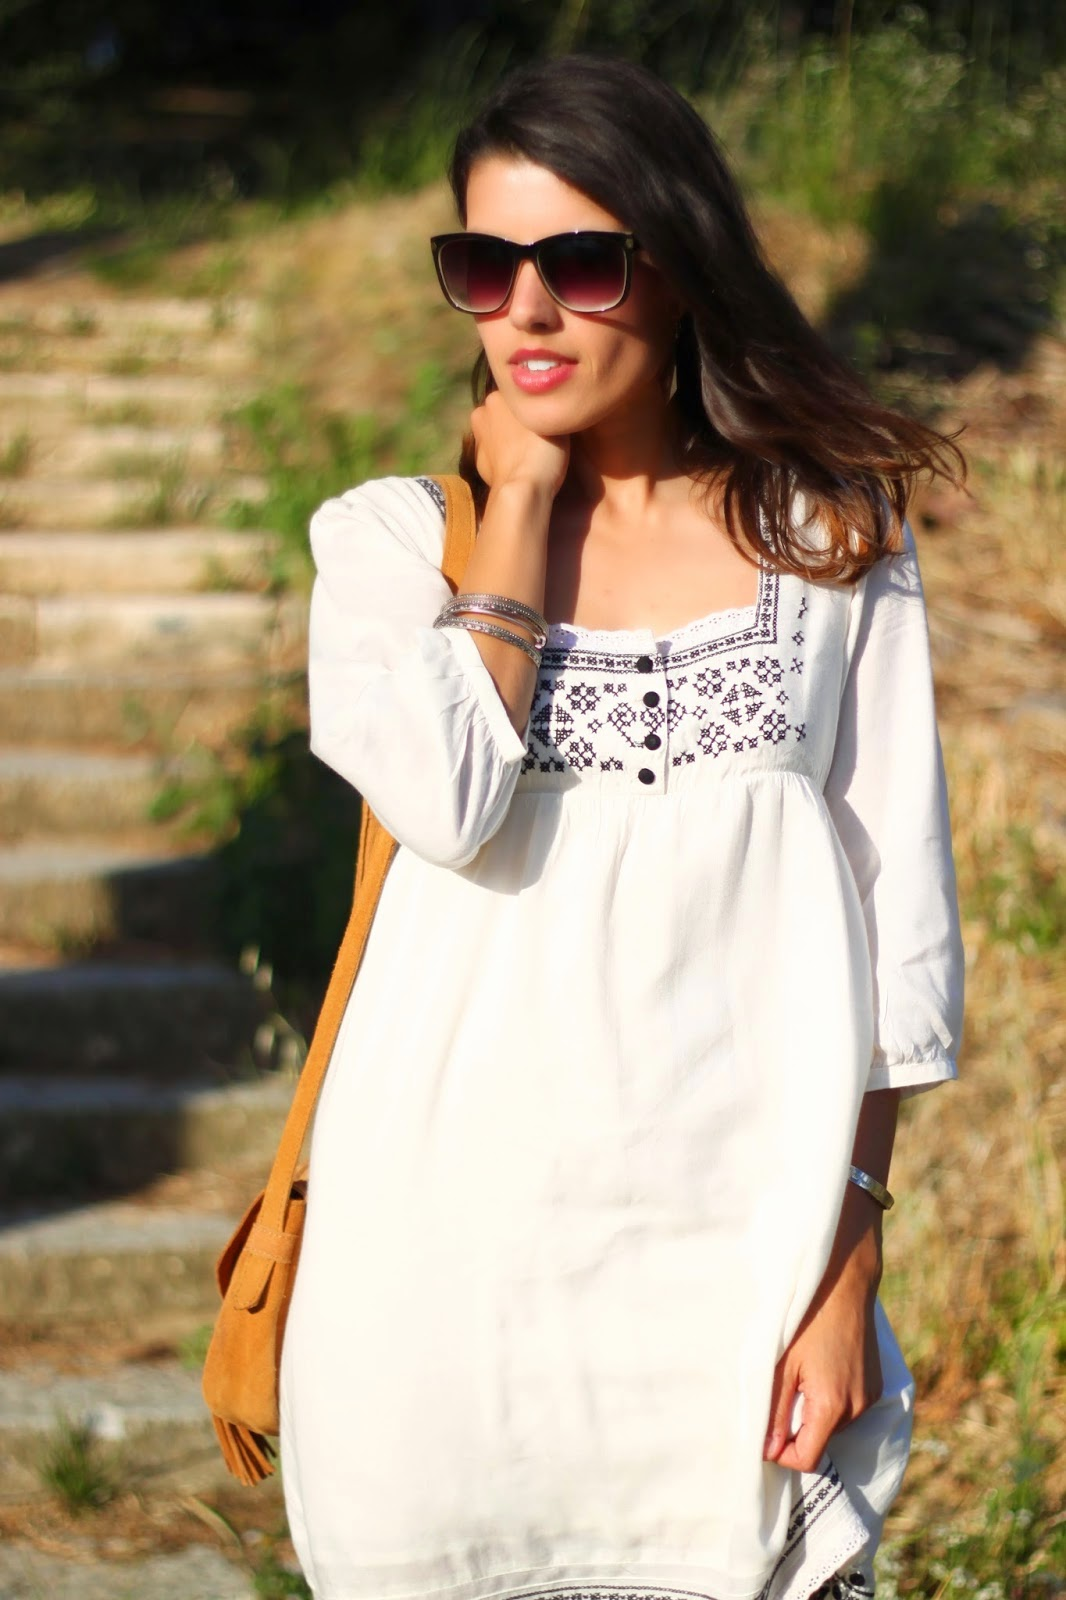 http://ilovefitametrica.blogspot.pt/2014/07/embroidered-dress.html